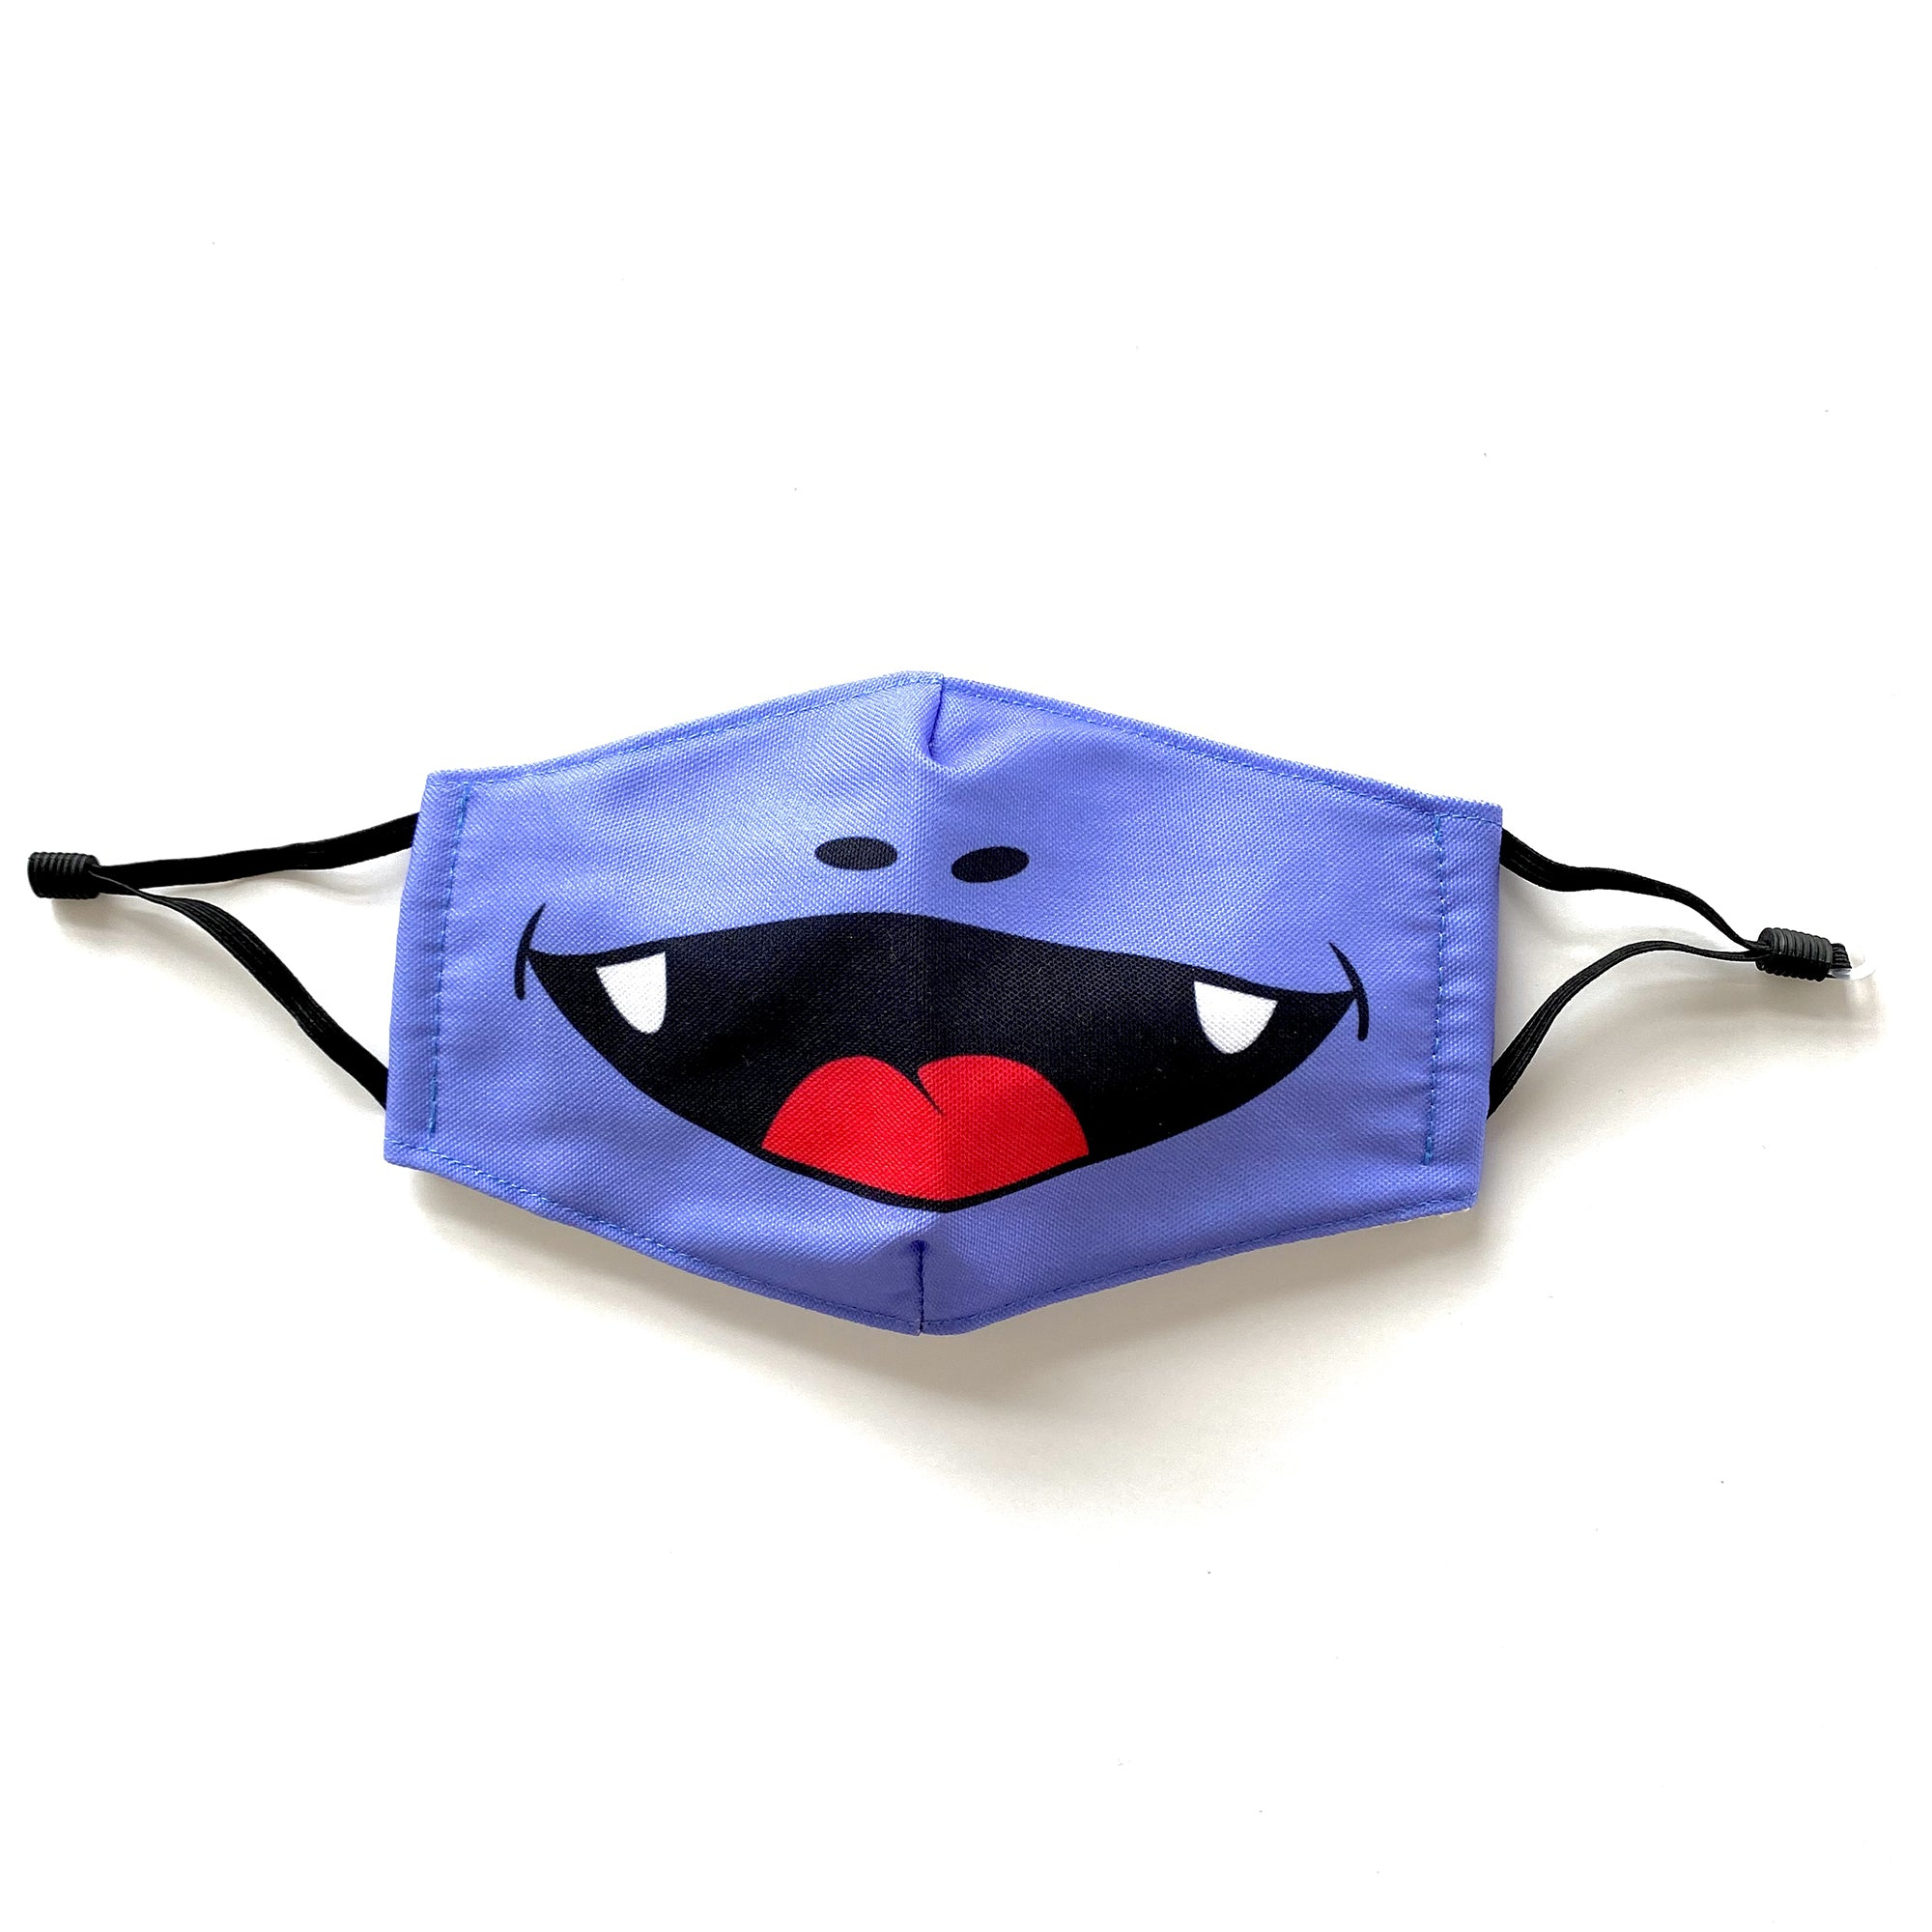 DEENO-SAUR Purple Character Face Mask for Kids 3+ years PM2.5 5-Layer Filter included